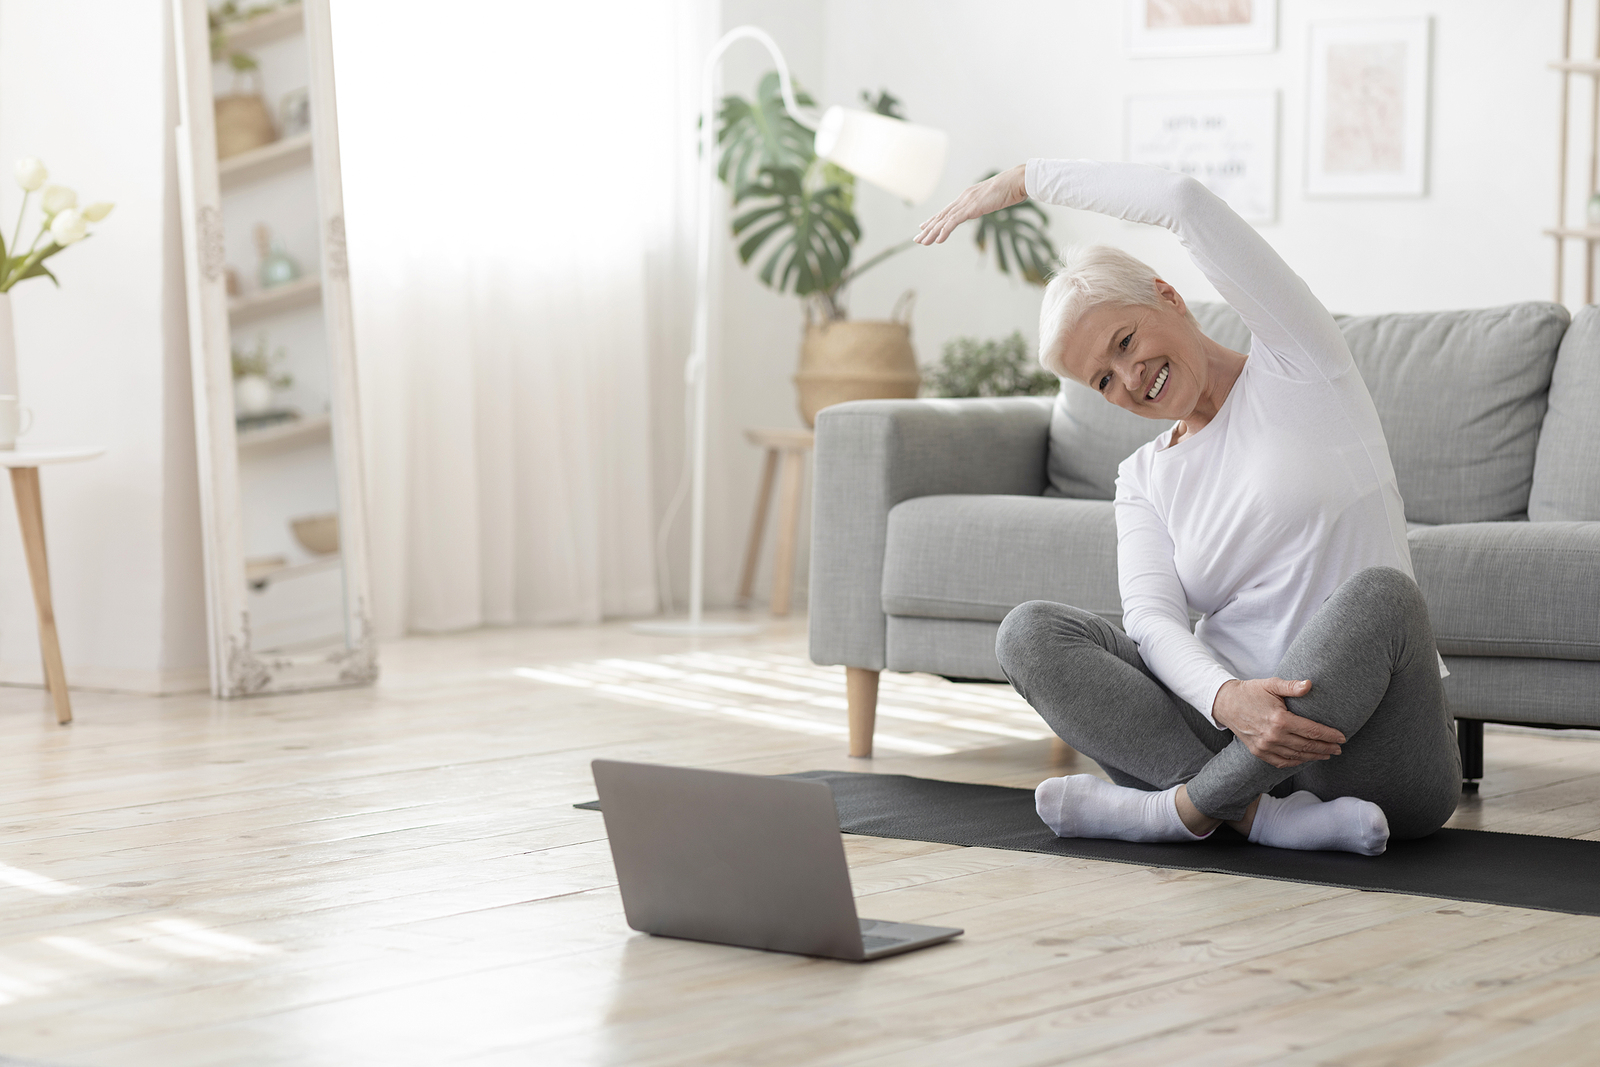 Senior woman enjoys following along with easy exercises to do at home